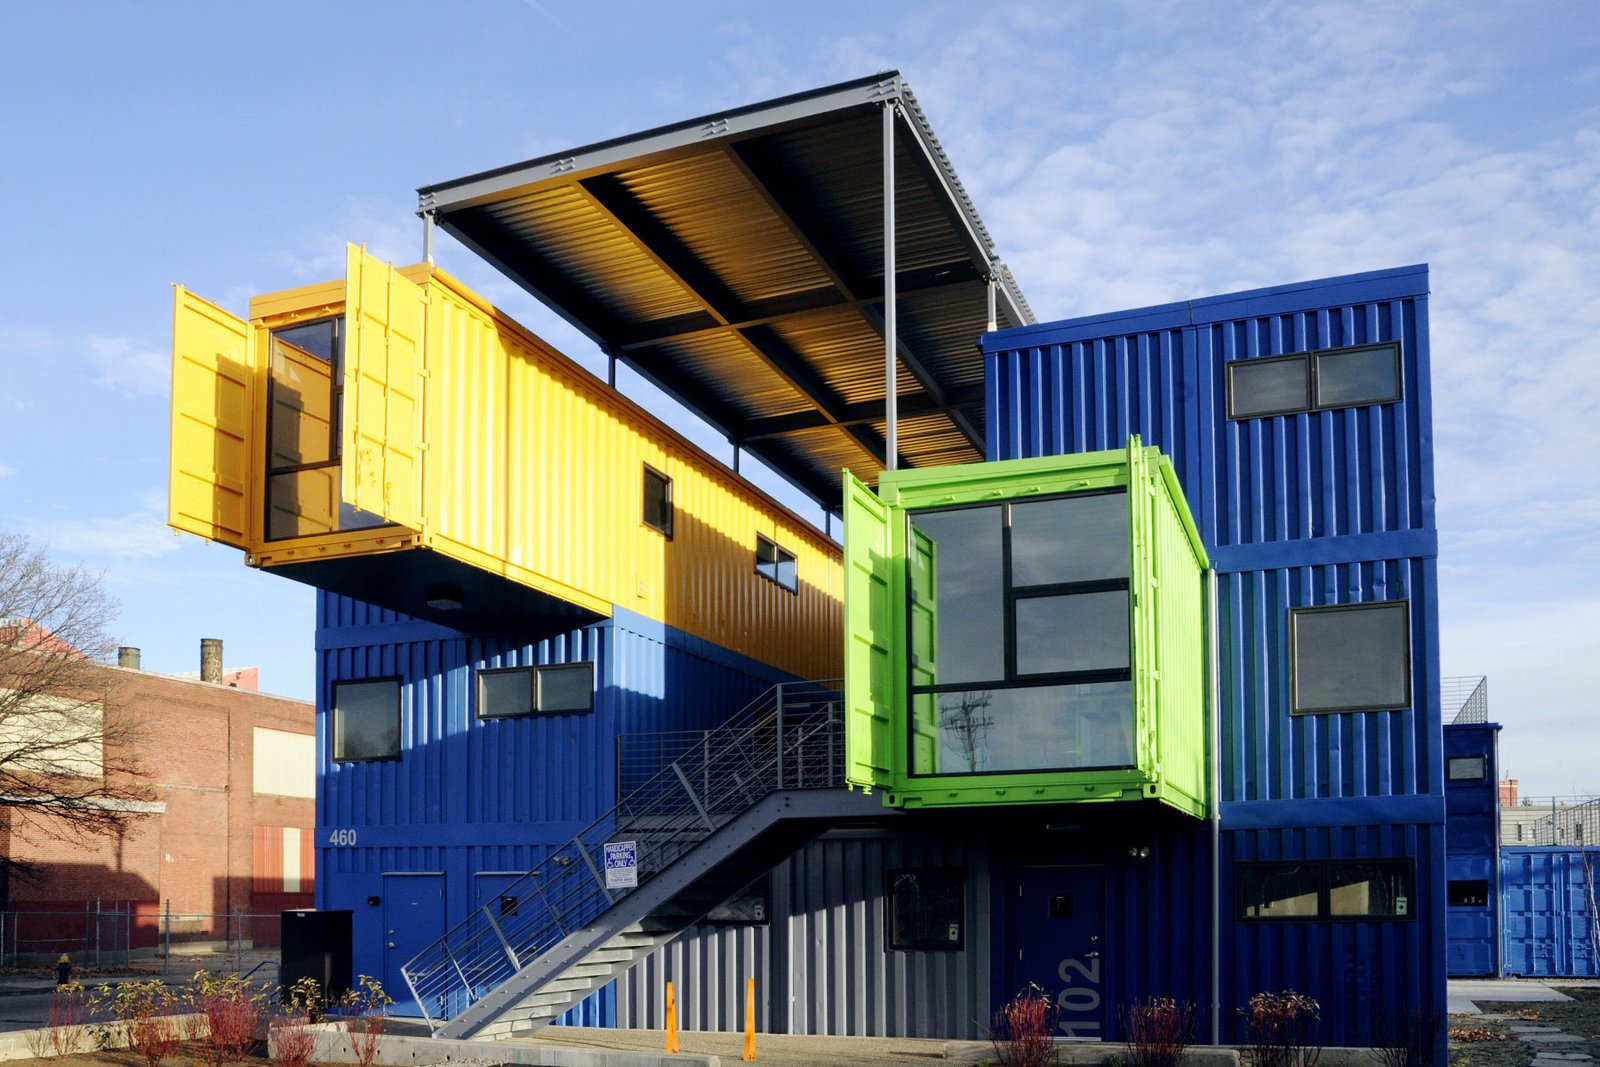 OK, technically it's not an island, nor is this a home, but we couldn't resist including this Rhode Island-based office/studio spaces constructed from 32 recycled shipping containers on an abandoned strip of Providence history - the former Harris Lumber site. This three-story, 12,000-square-foot complex, which sits  in a post-industrial section of Providence, is the largest office building in the United States made exclusively of cargo containers by Stack Design Build.  Photo 7 of 12 in 10 Beautiful Island-Style Shipping Container Homes